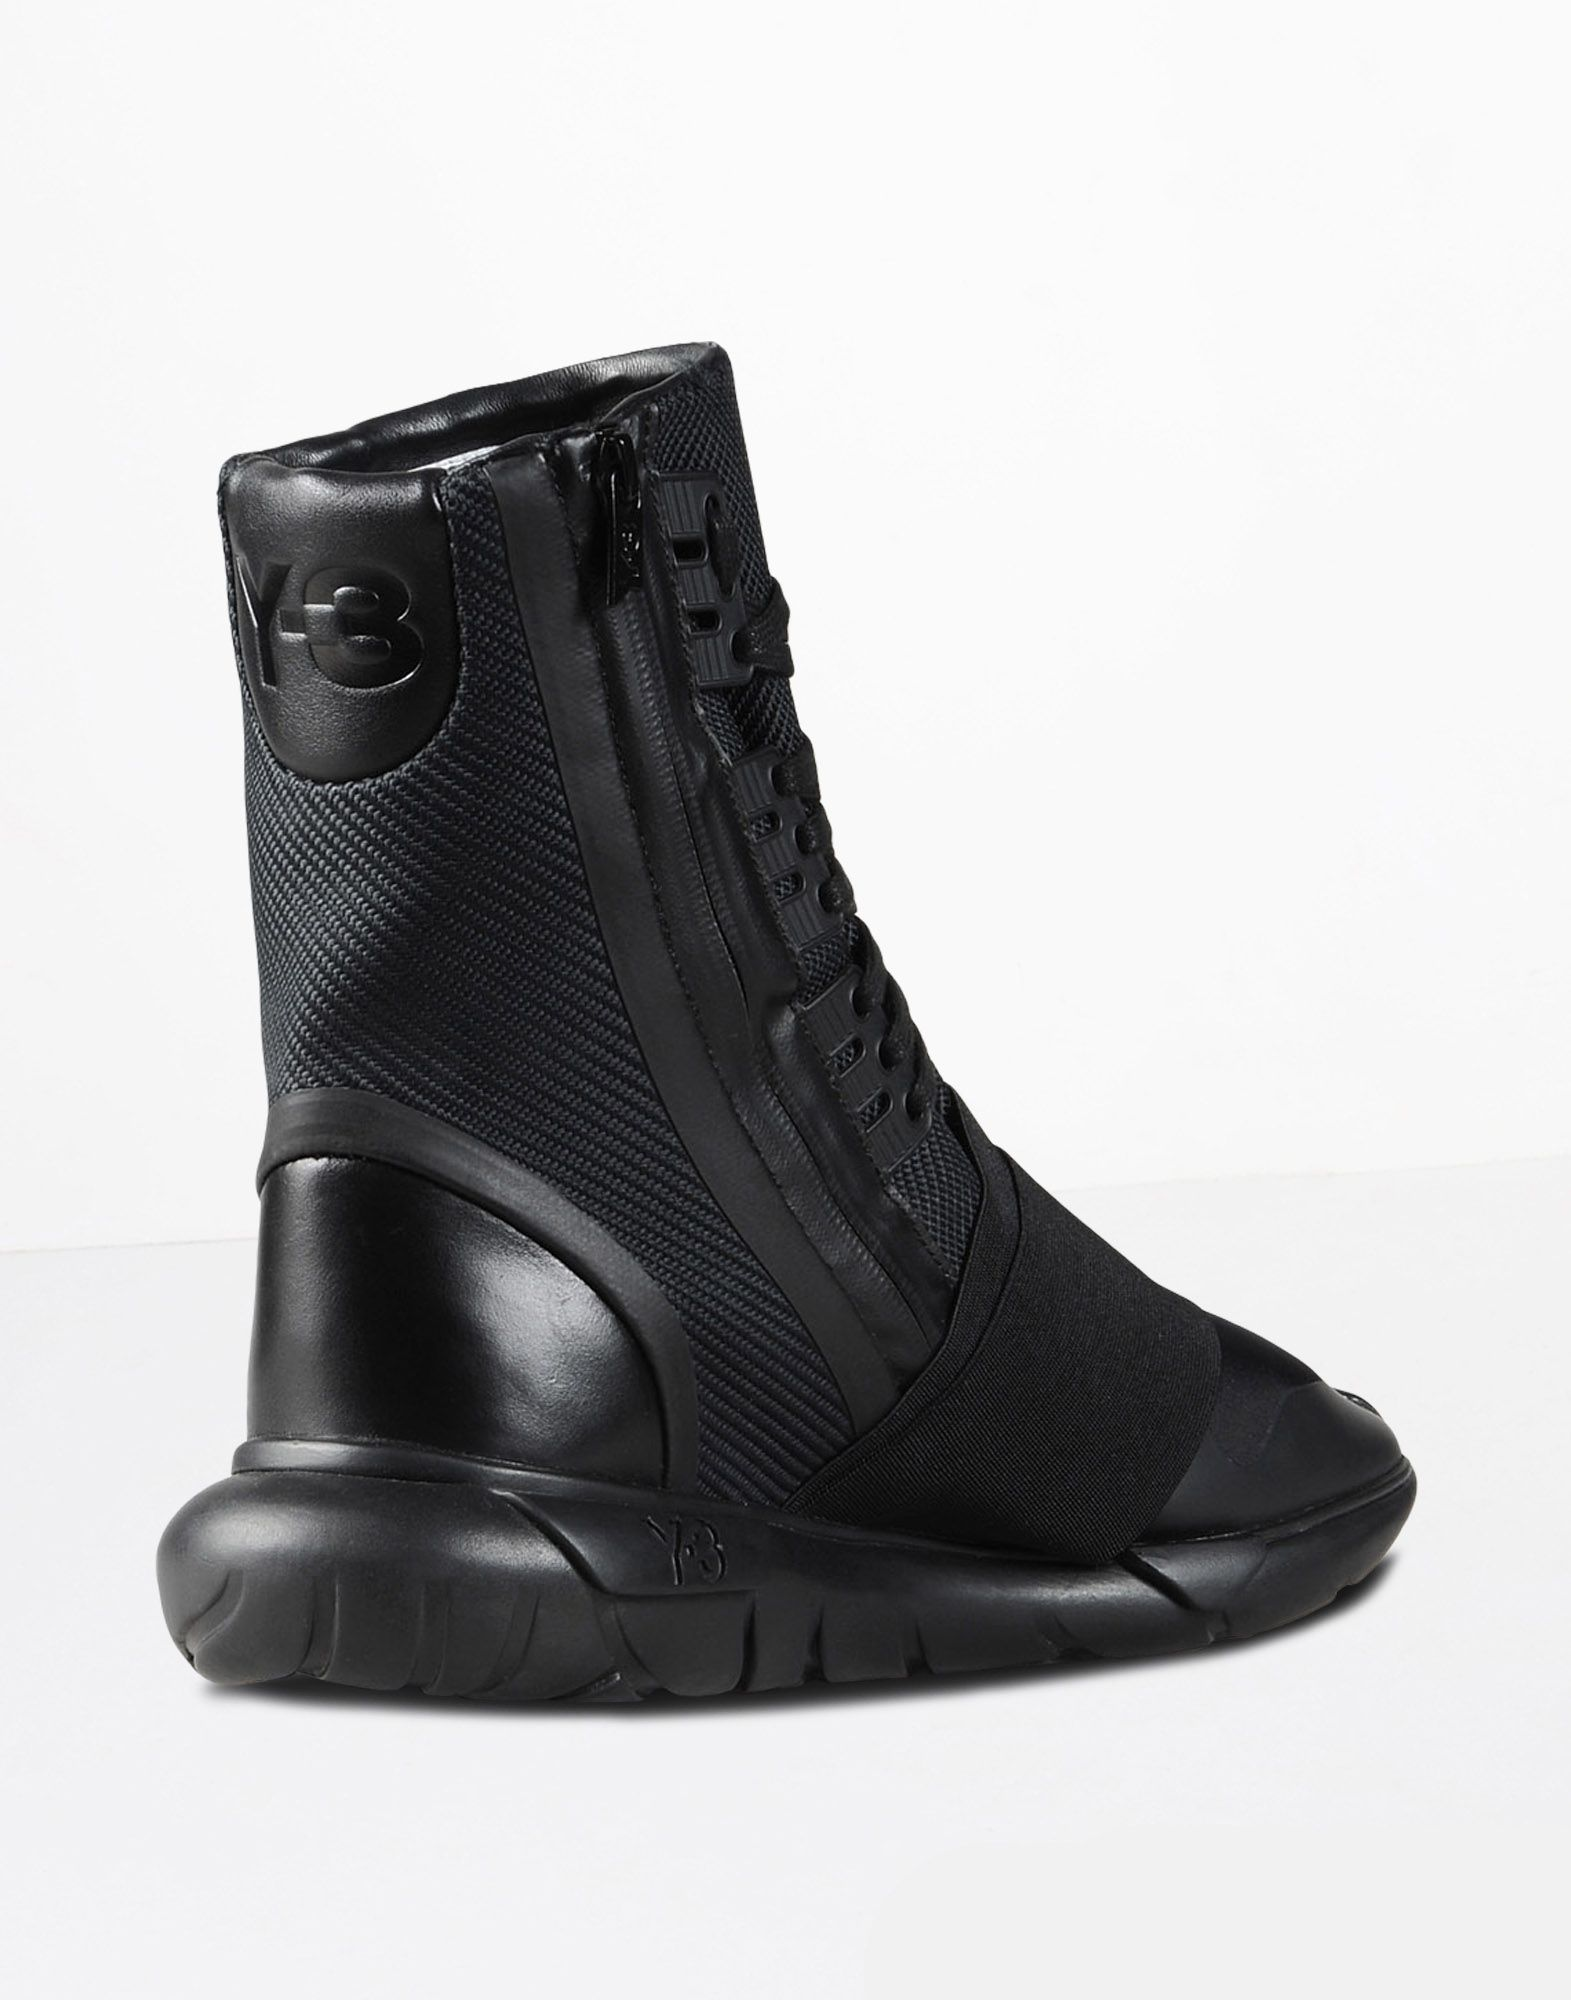 296ea9d476b Y-3 QASA BOOT SHOES man Y-3 adidas